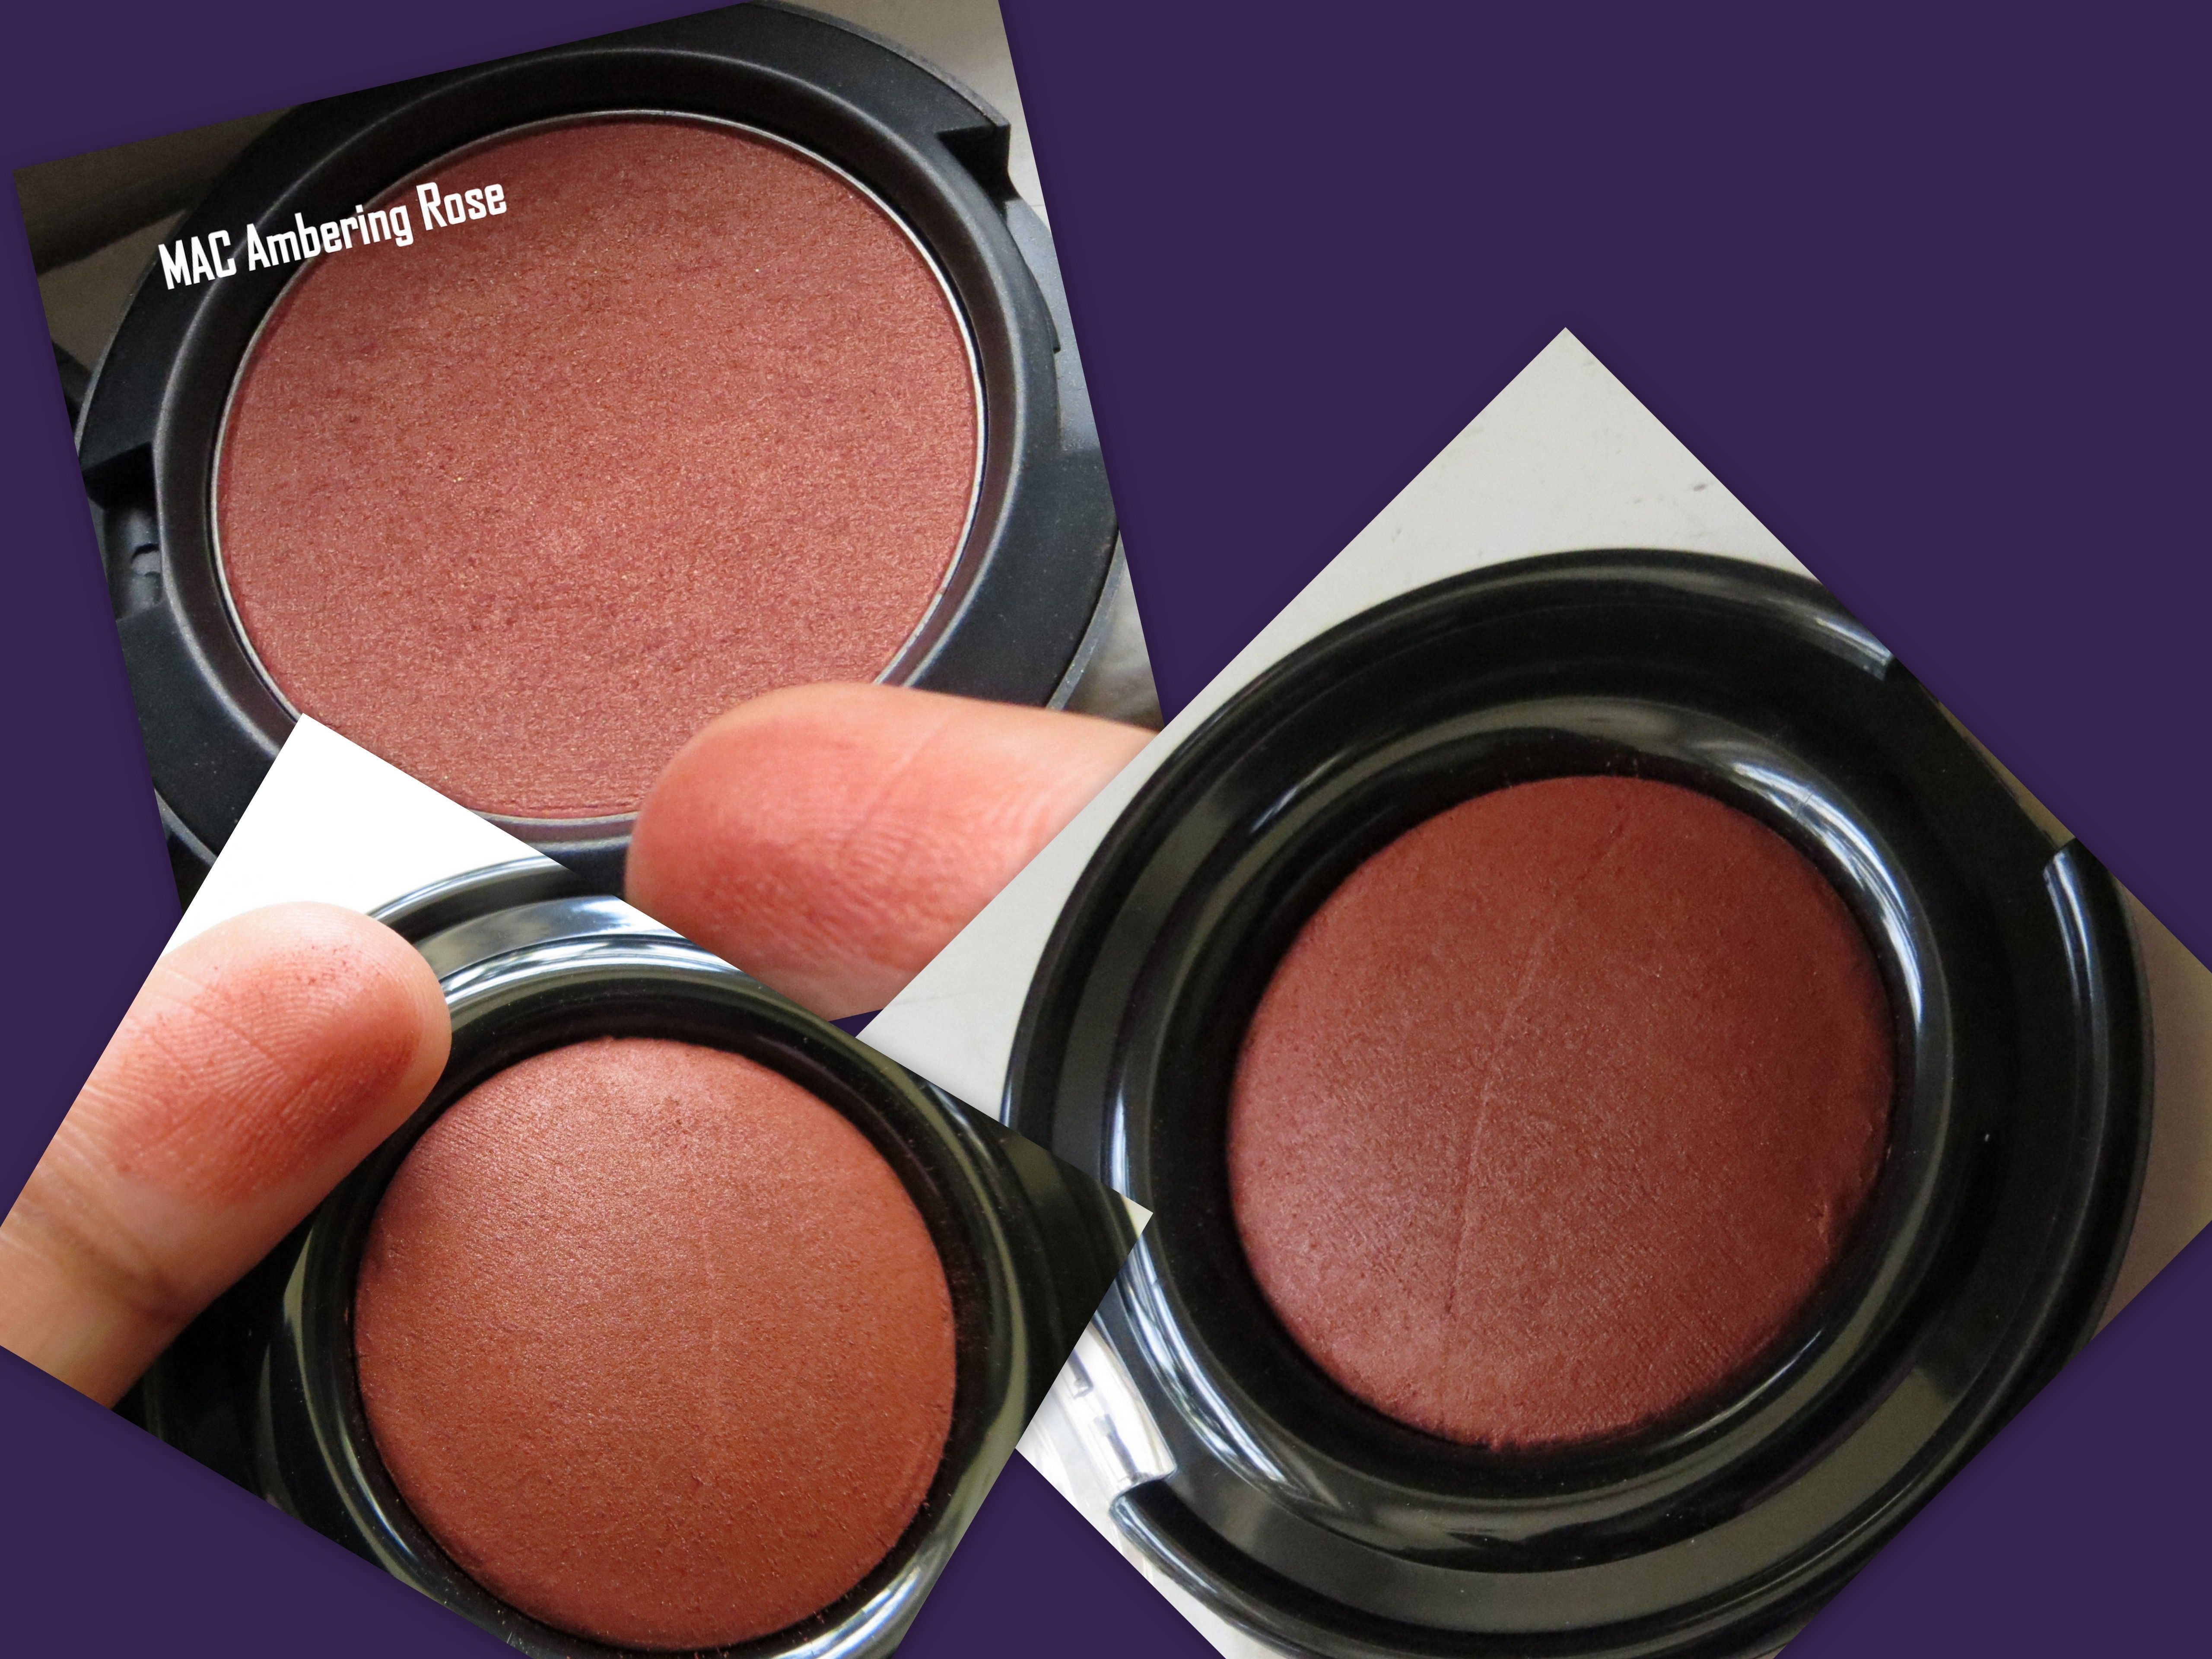 Dupe for a MAC blush, less than 5. Makeup dupes, Dark